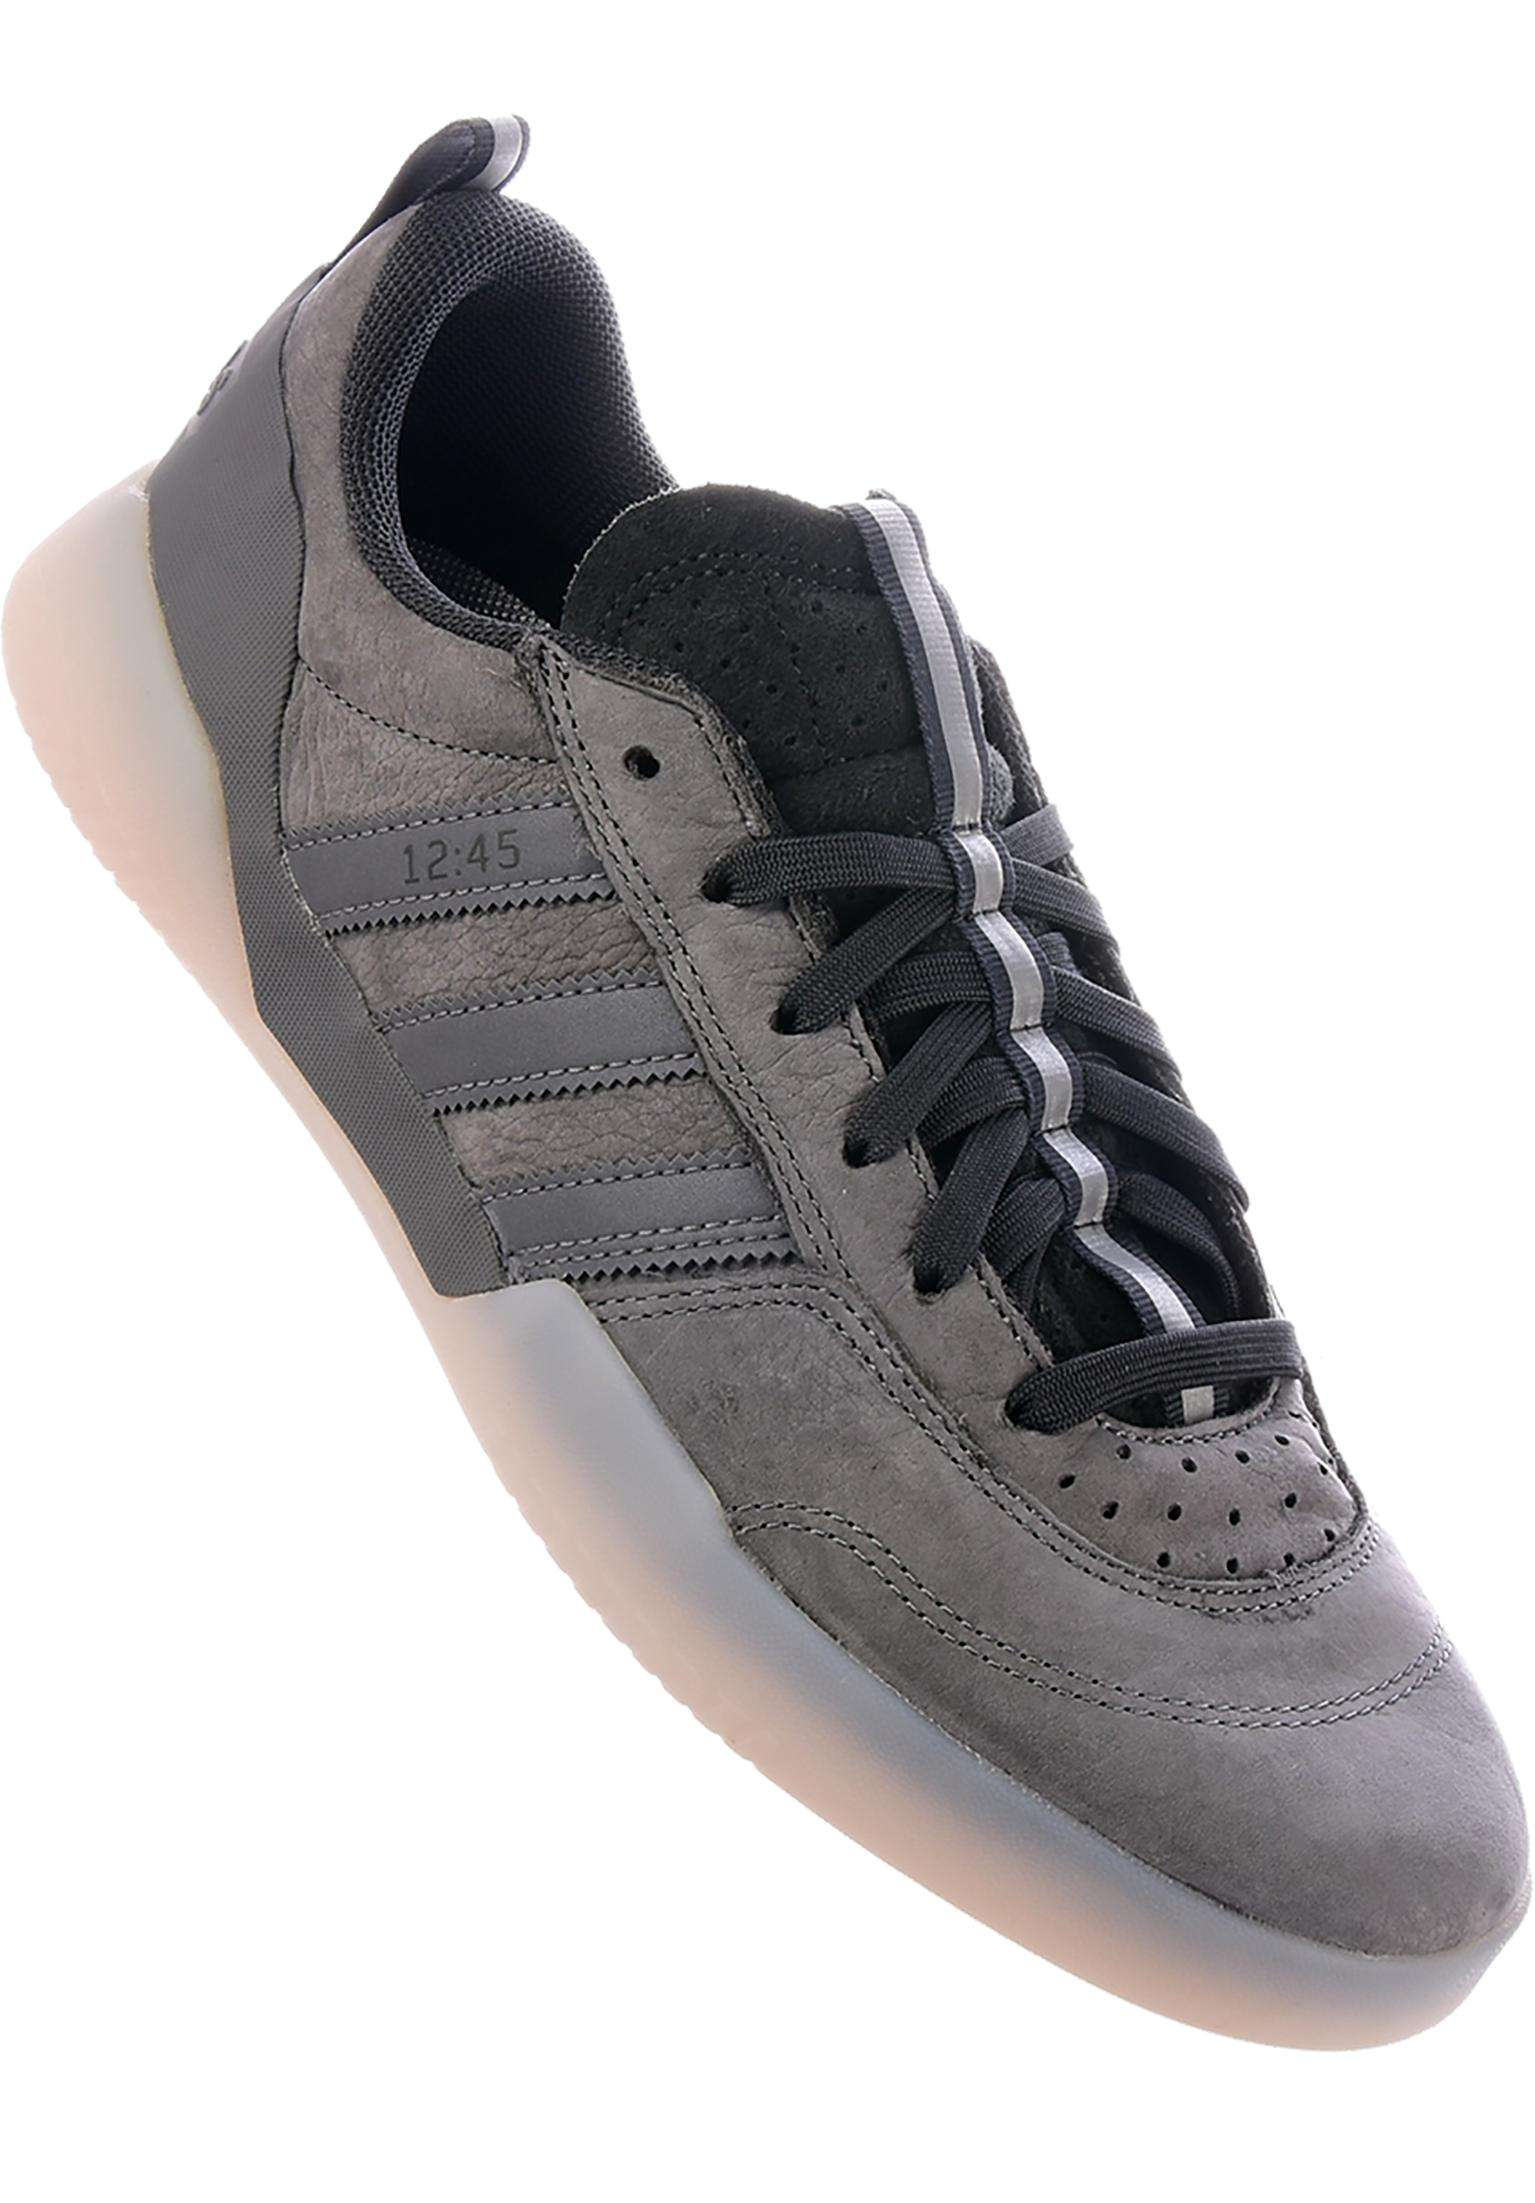 huge discount 1a8b7 035c2 City Cup x Numbers adidas-skateboarding All Shoes in grey-carbon-grey for  Men  Titus